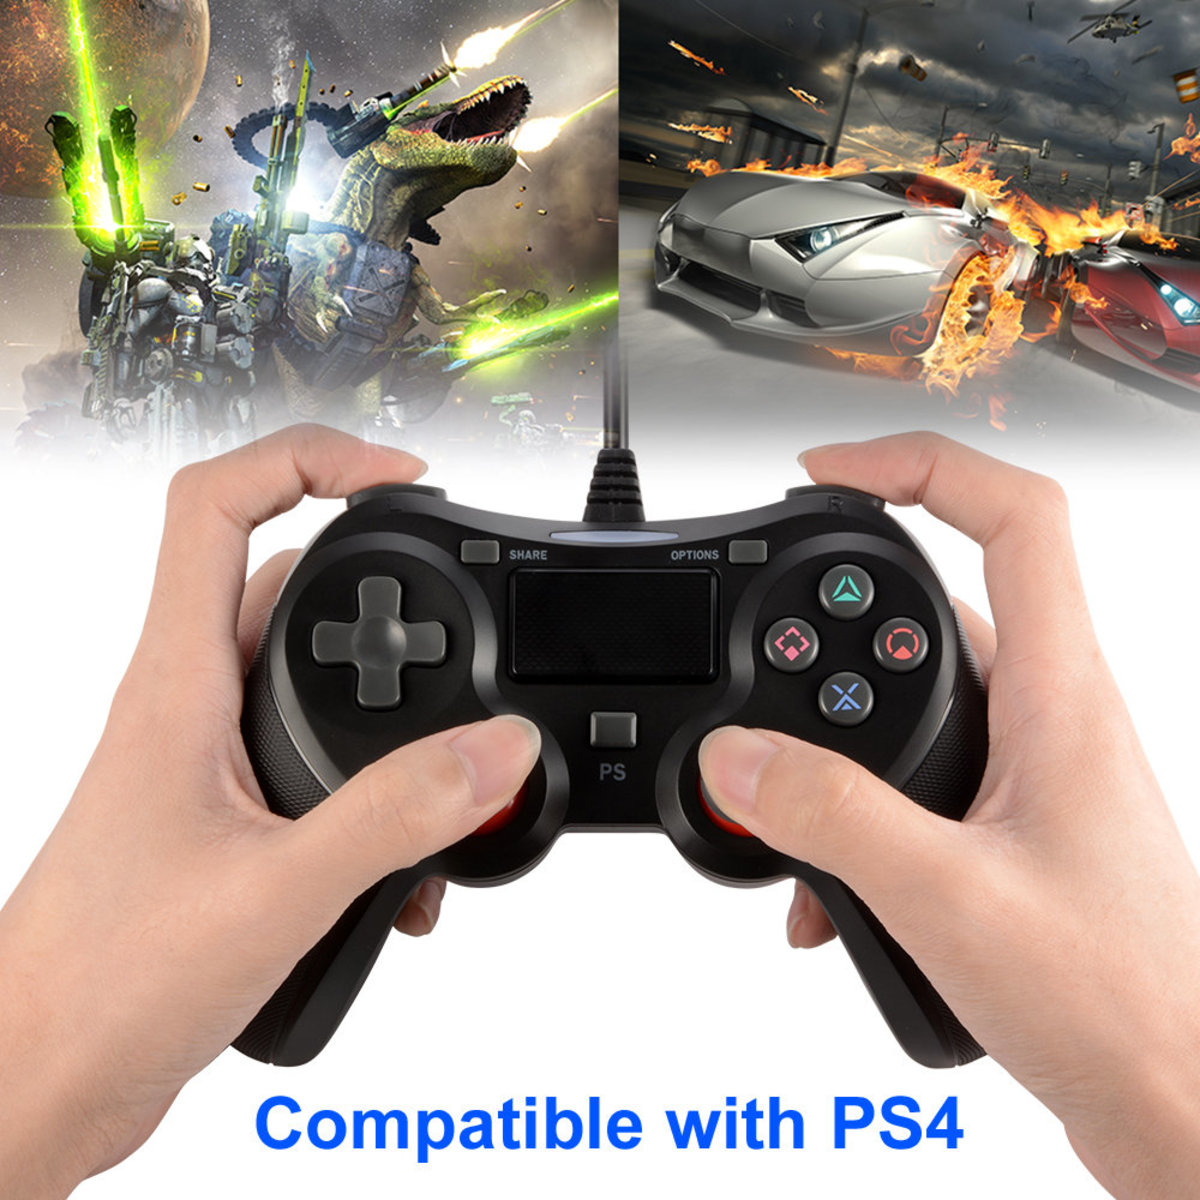 Black wired game controller with vibration private mode For PS4-5N